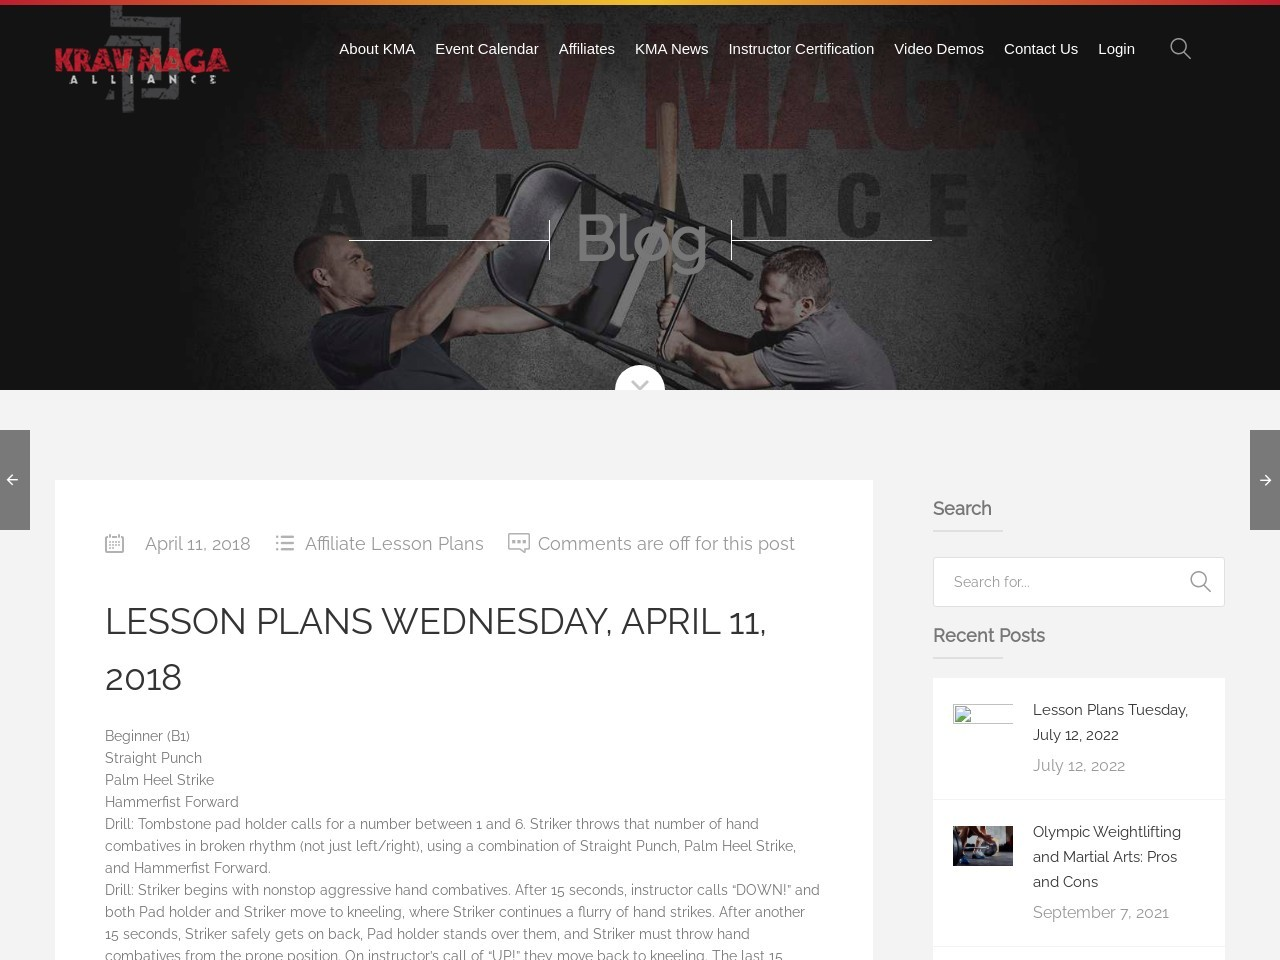 Lesson Plans Wednesday, April 11, 2018